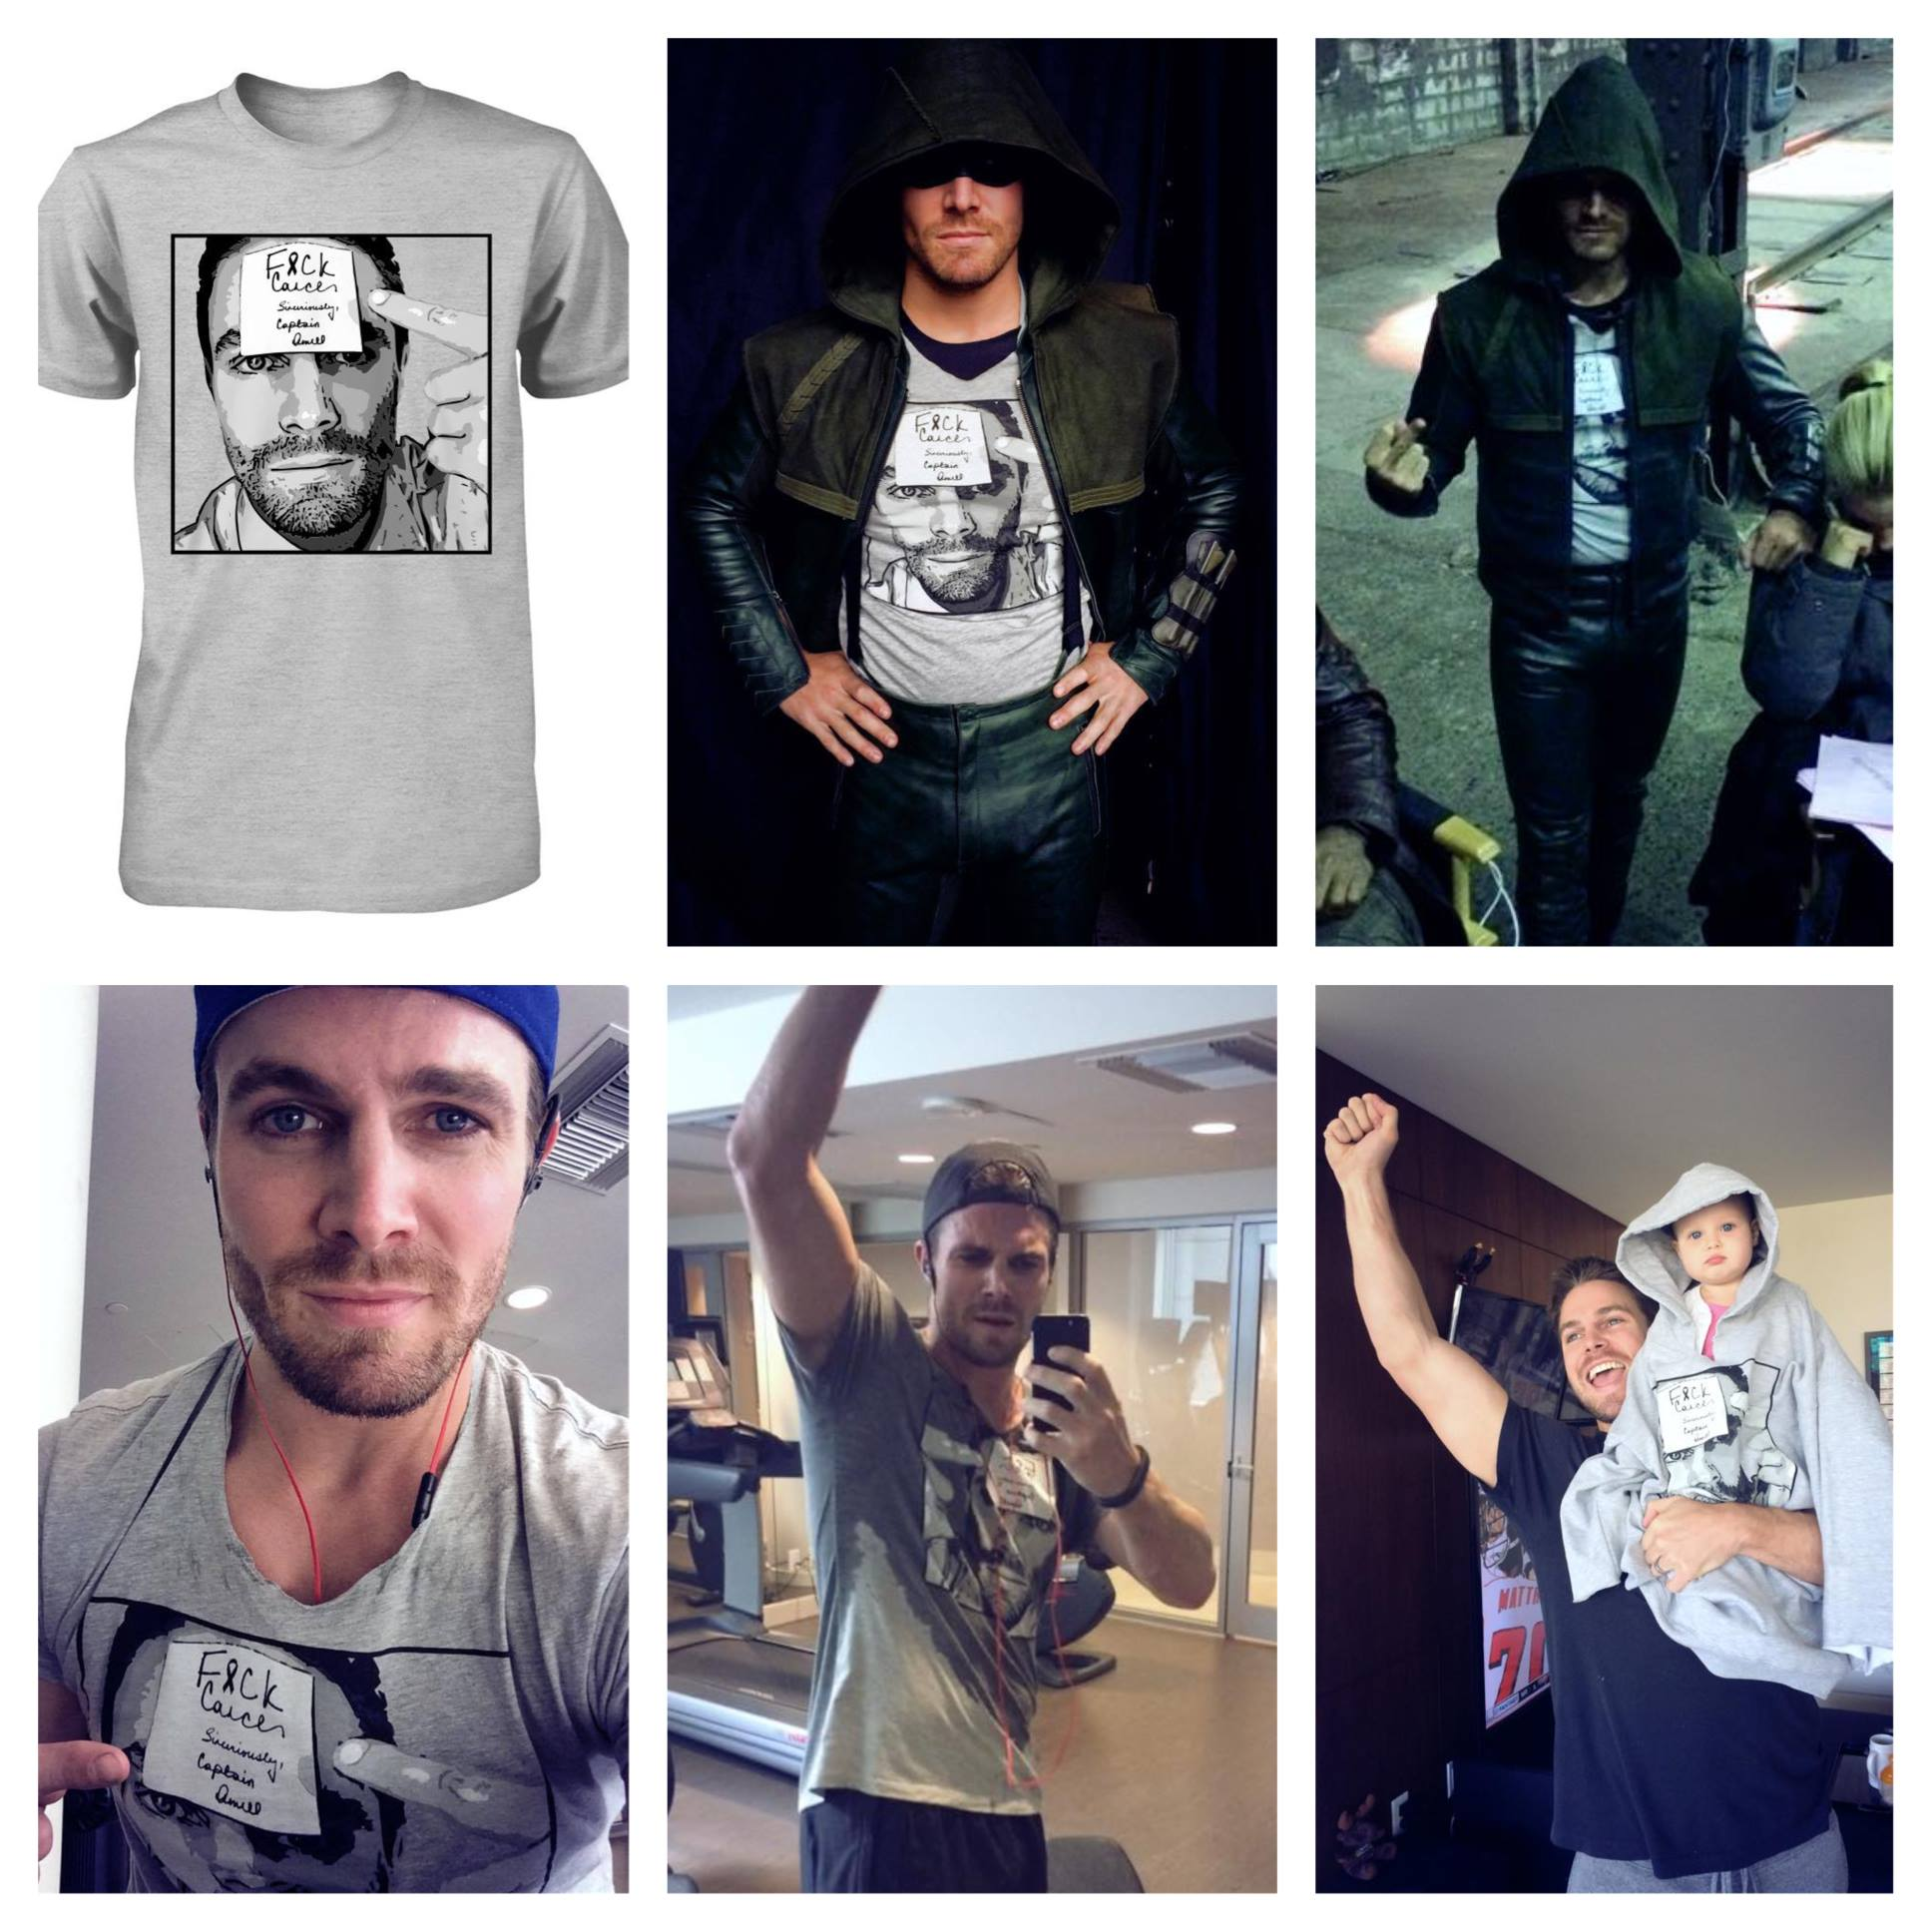 Stephen Amell raised funds, and awareness, for a Cancer Charity throughout September of 2014